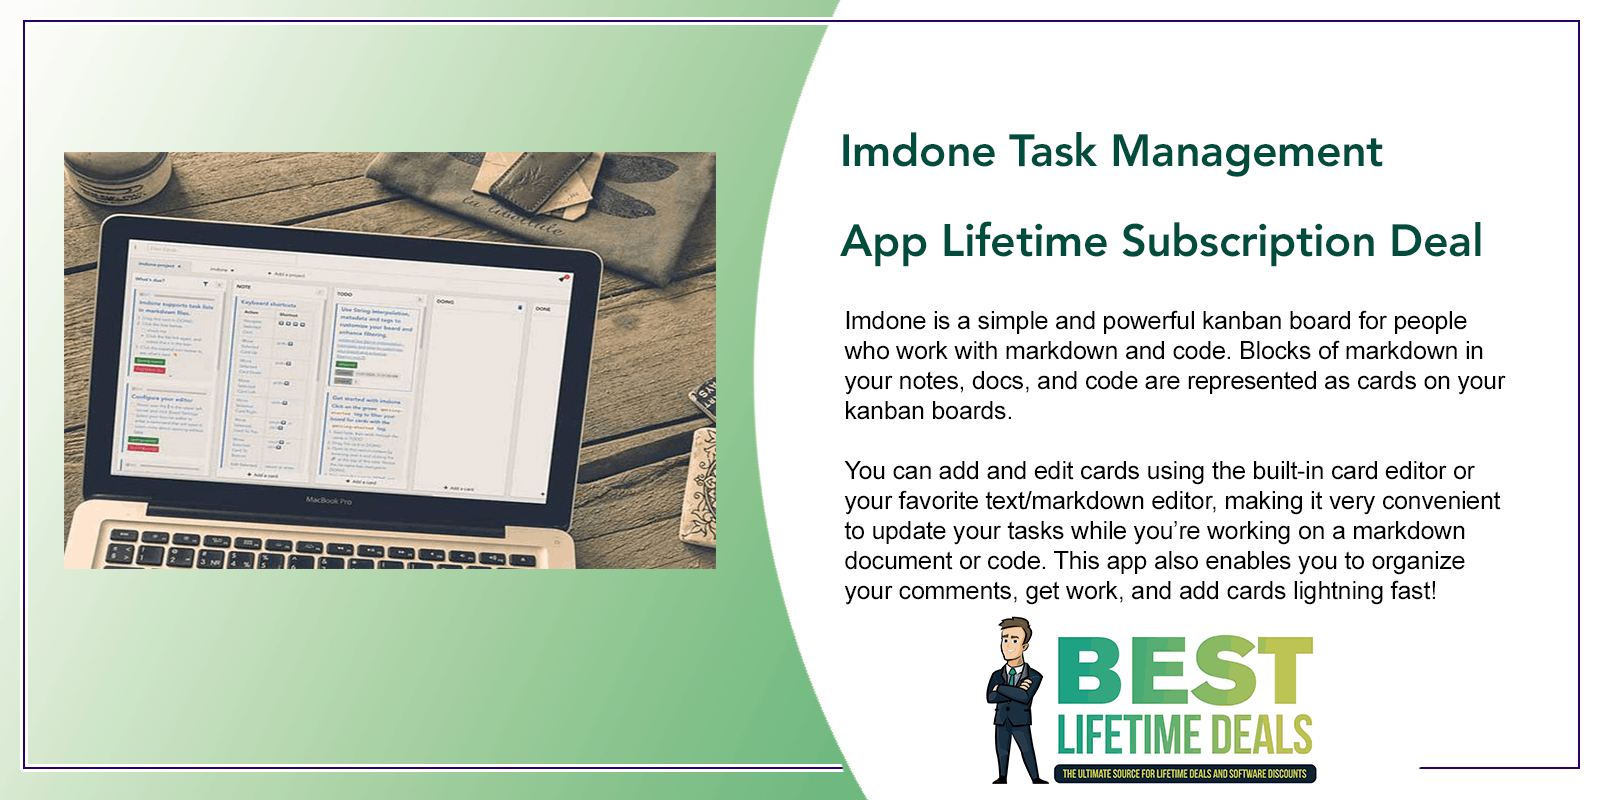 Imdone Task Management App Featured Image